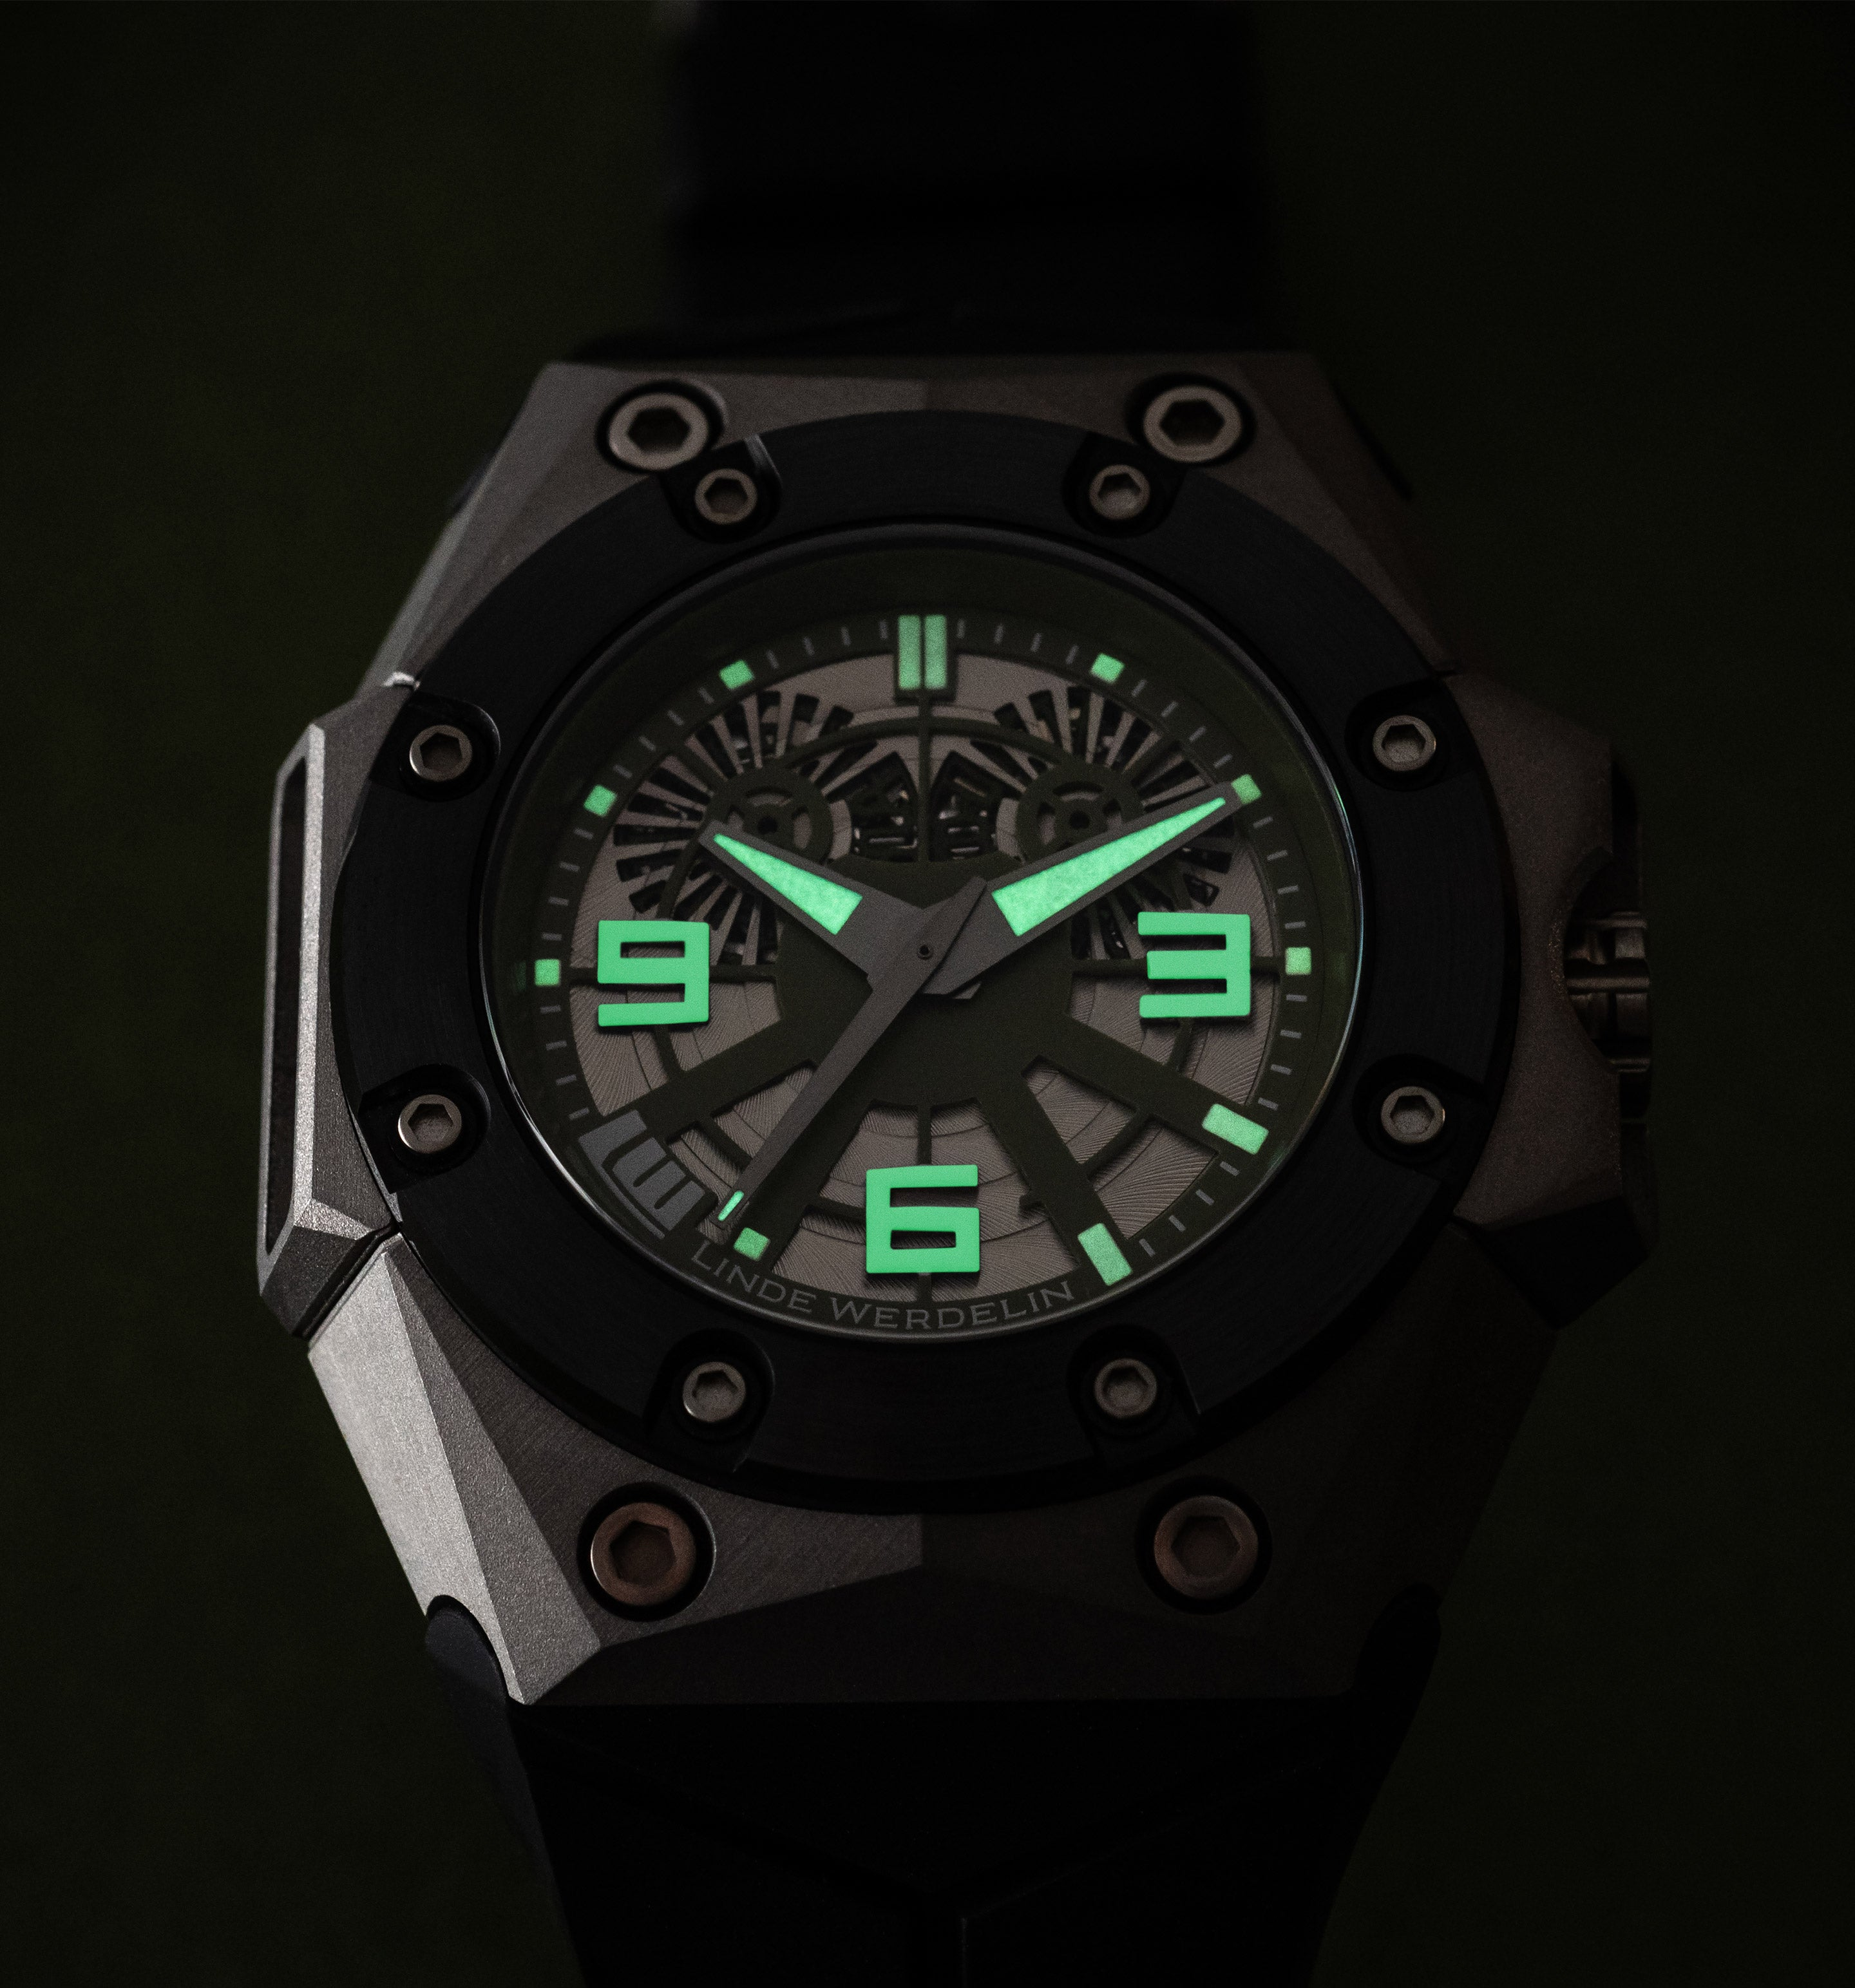 The Oktopus Deep Sea is a very special watch, inspired by a commission that Linde Werdelin